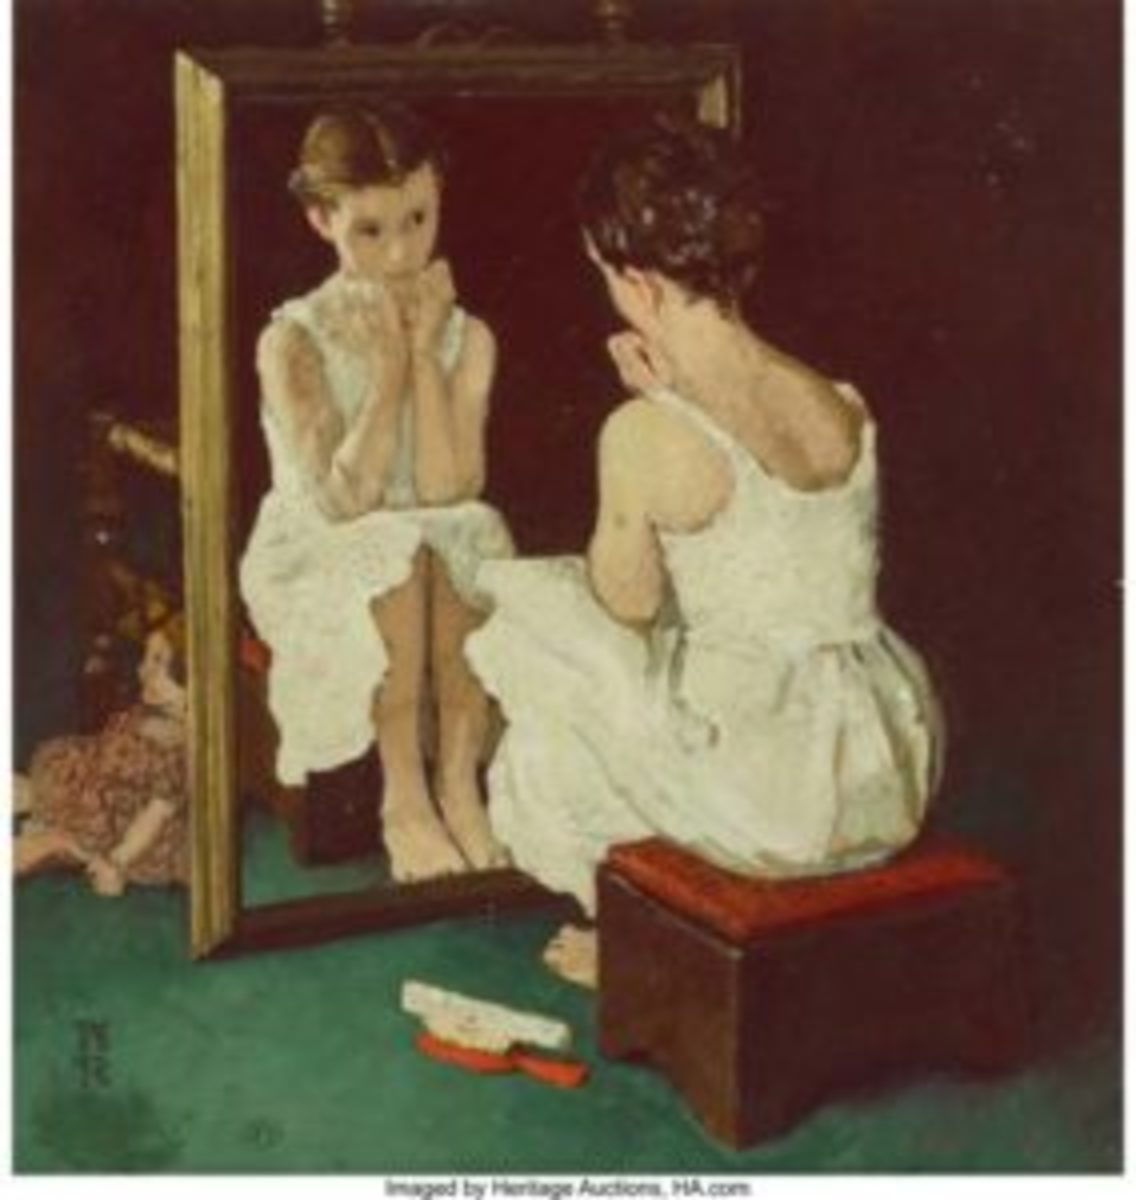 Norman Rockwell (American, 1894-1978), Girl at Mirror, The Saturday Evening Post cover study, 1954, oil on photographic paper laid on board, 10-1/8 x 10-1/2 inches, initialed lower left: N/R, $399,000.